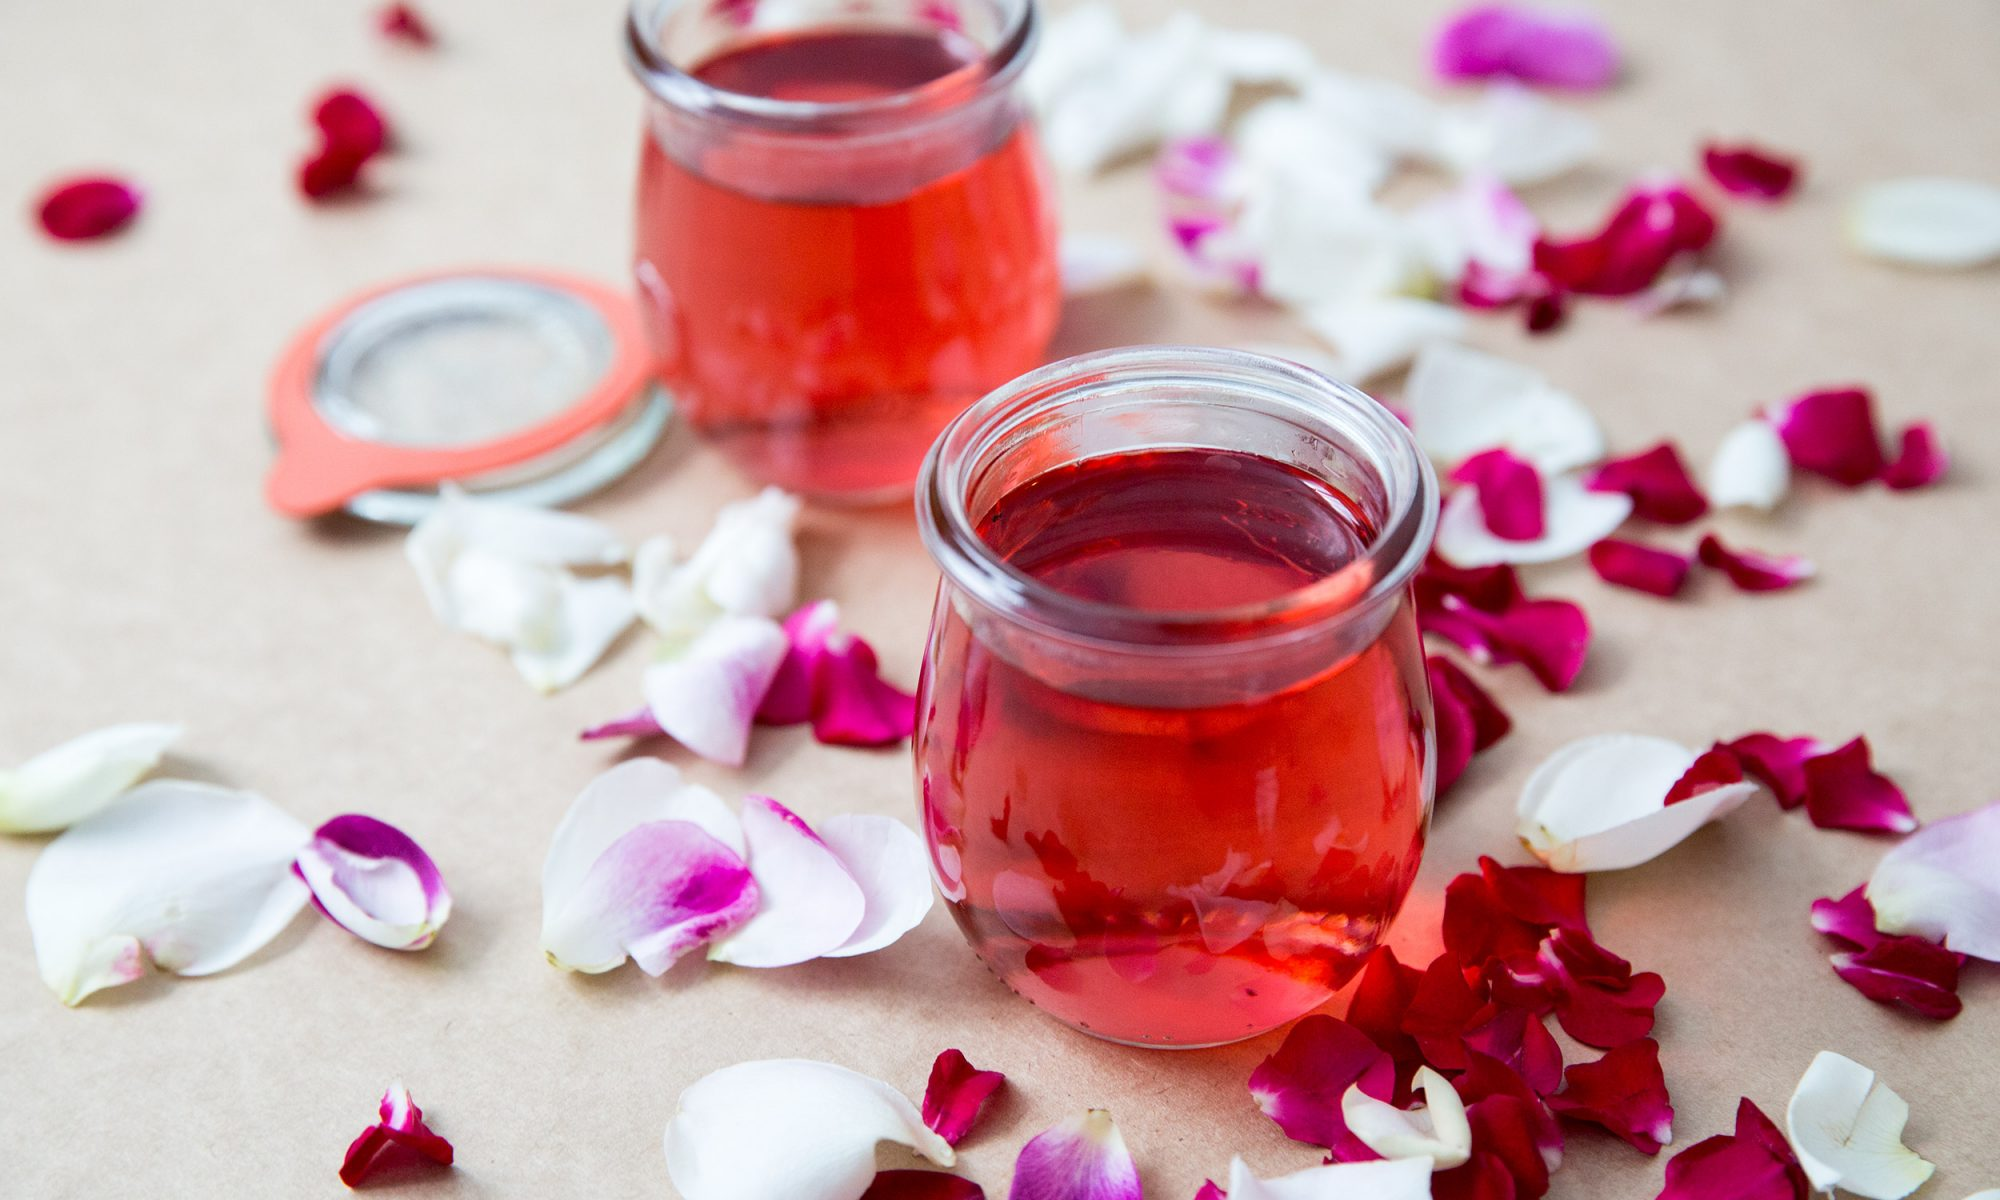 How to Make Homemade Rose Simple Syrup